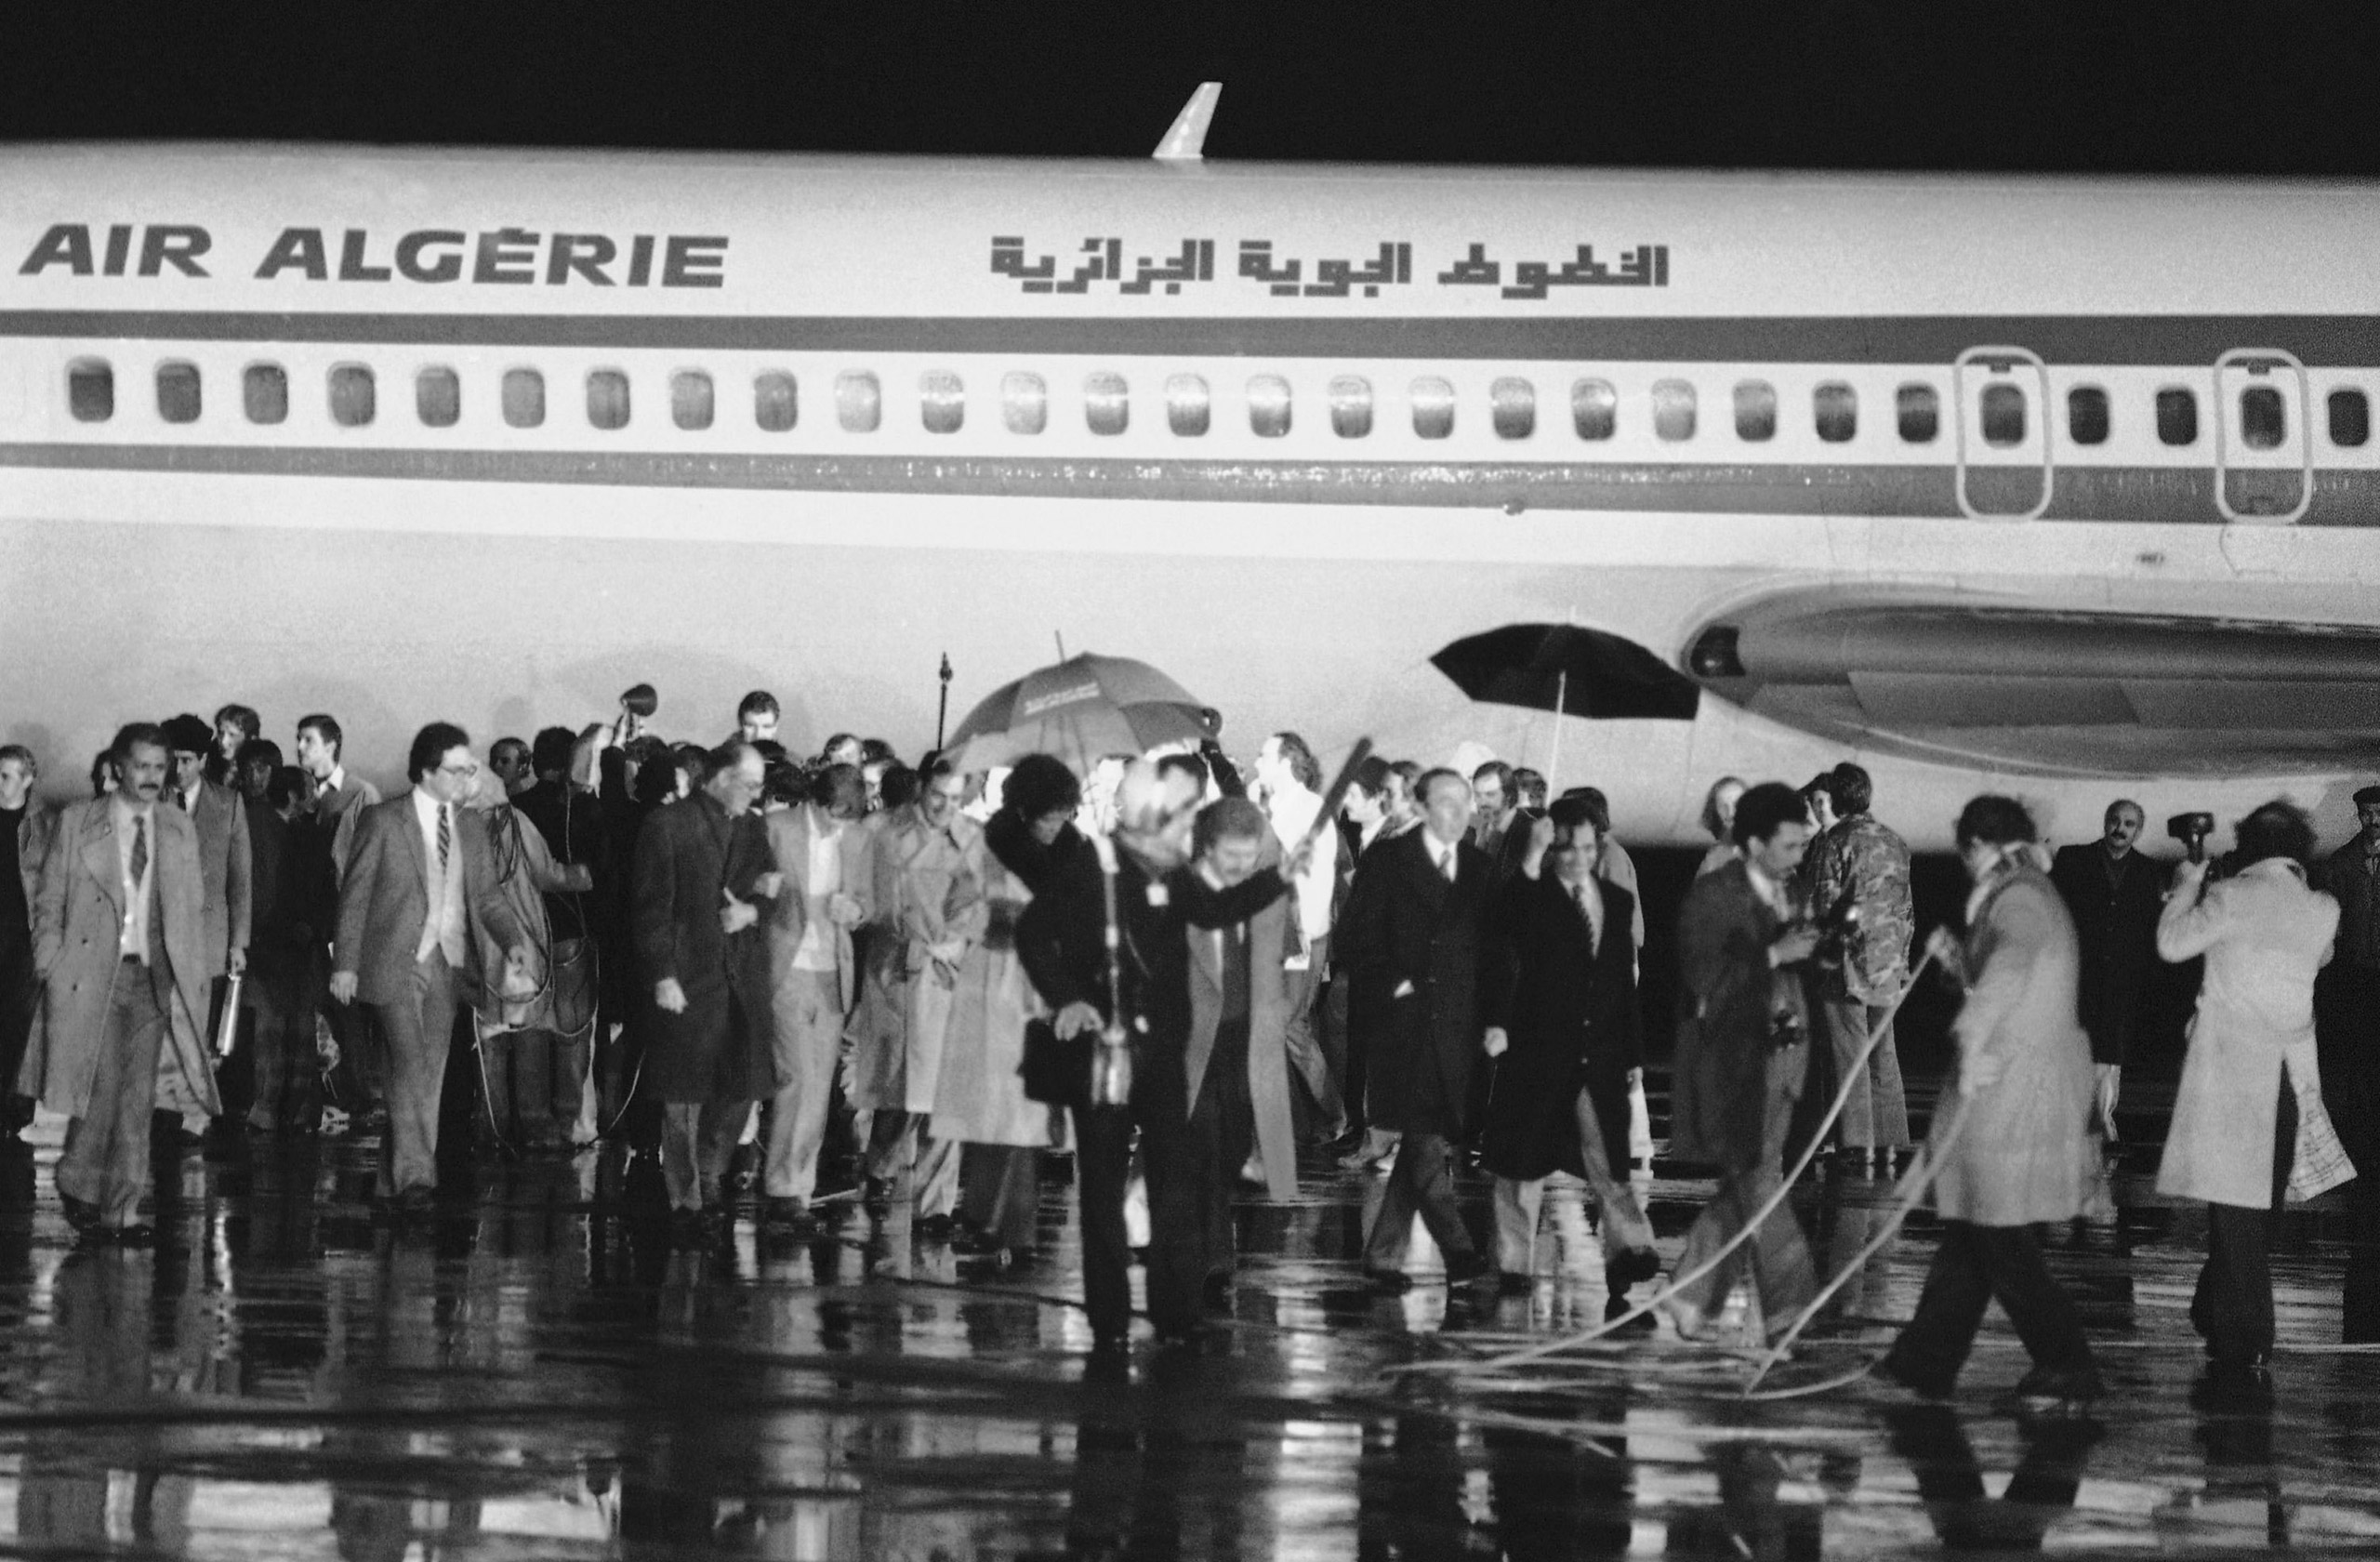 Outgoing US Deputy Secretary of State, Warren Christopher (right) strolls away under an umbrella, as the American hostages freed from Iran, and Algerian officials, gather around the Algerian aircraft that flew the hostages to freedom at Algiers airport, on Jan. 21, 1981.